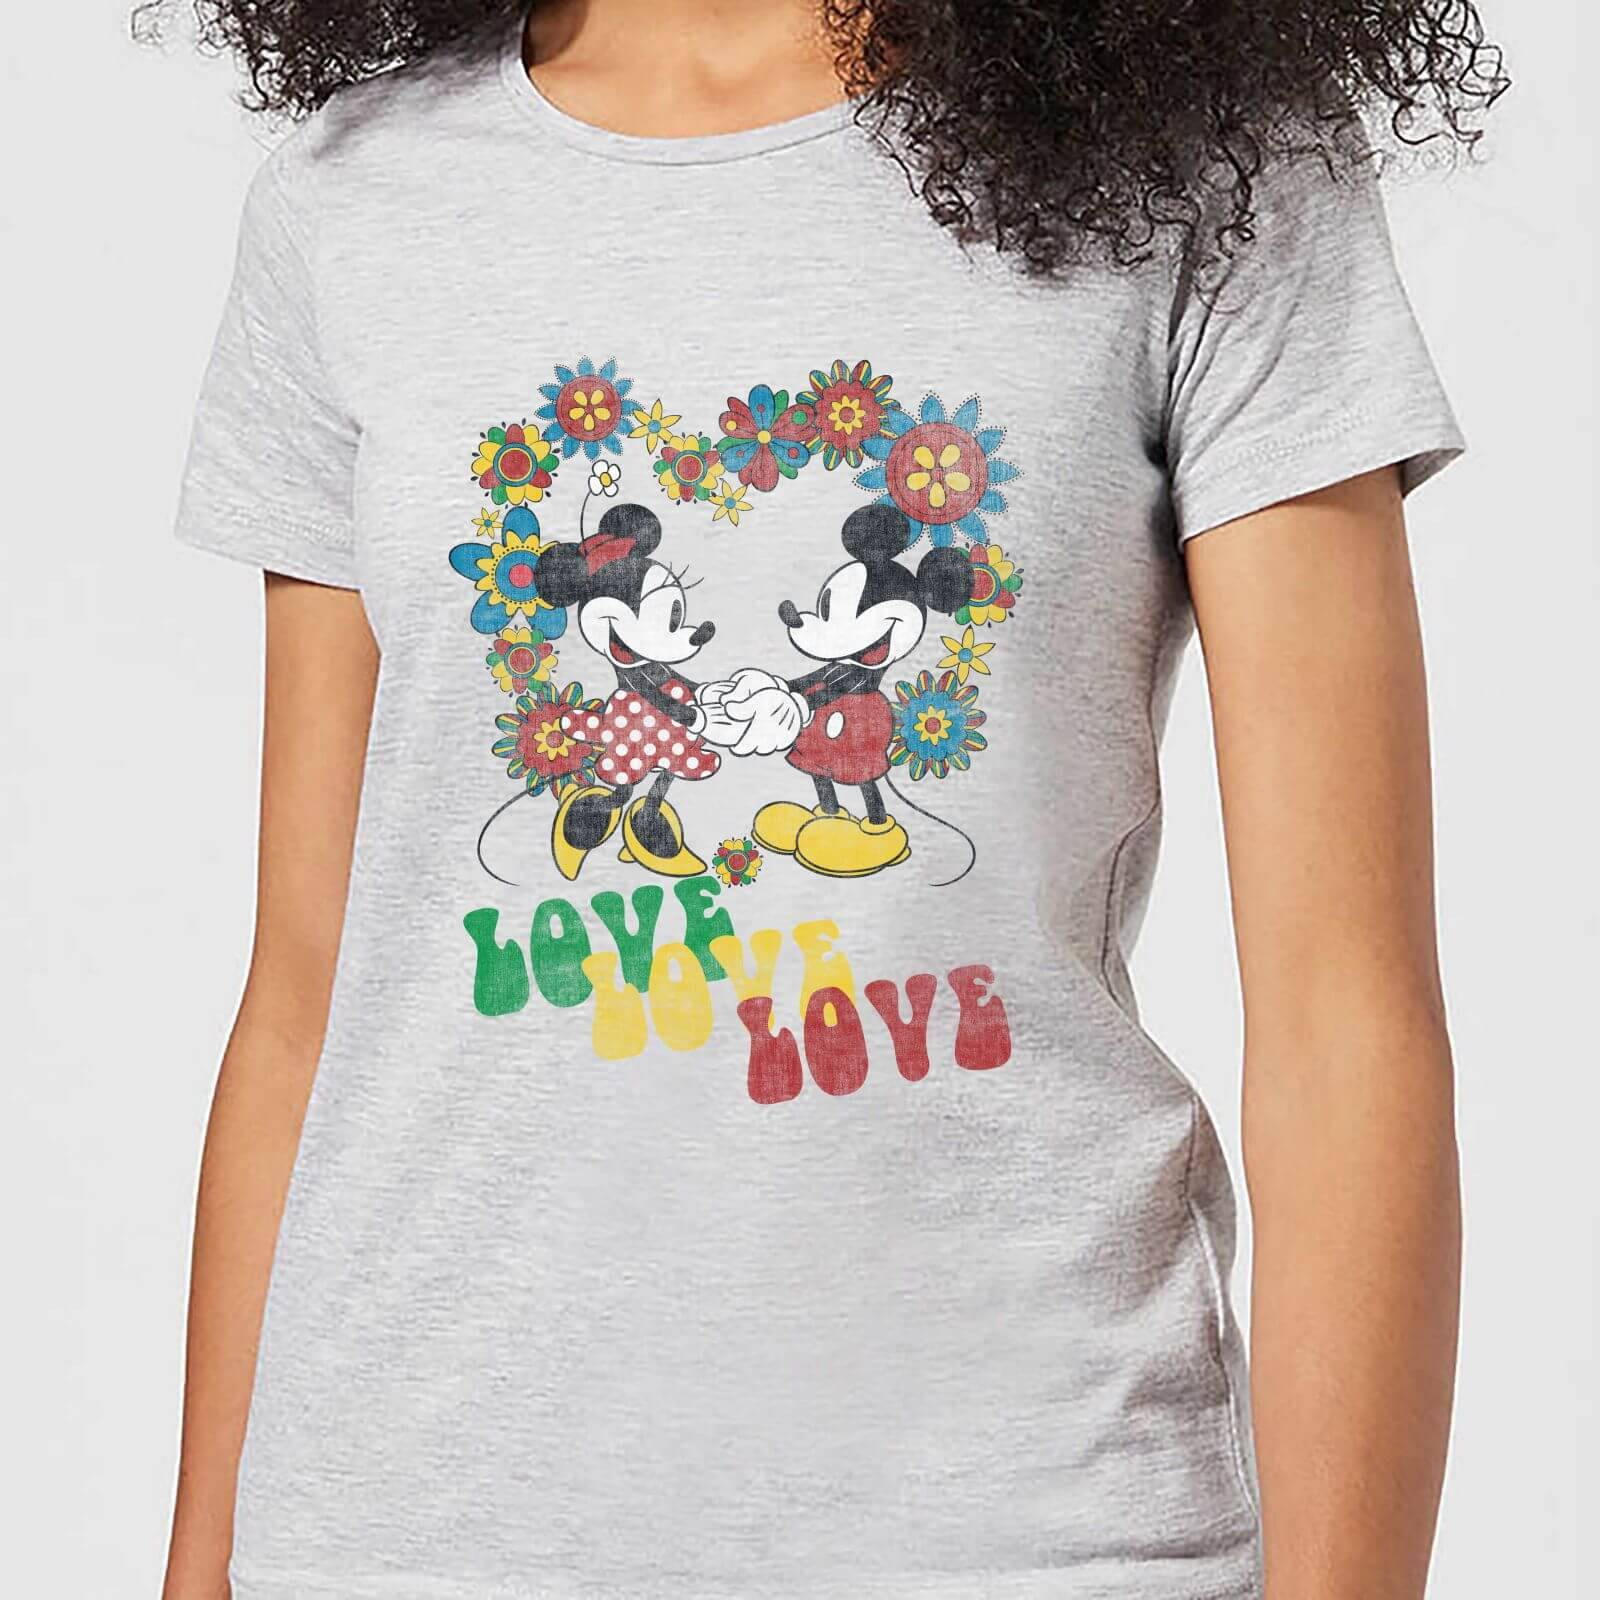 Disney Mickey Mouse Hippie Love Women's T-Shirt - Grey - XL - Grey